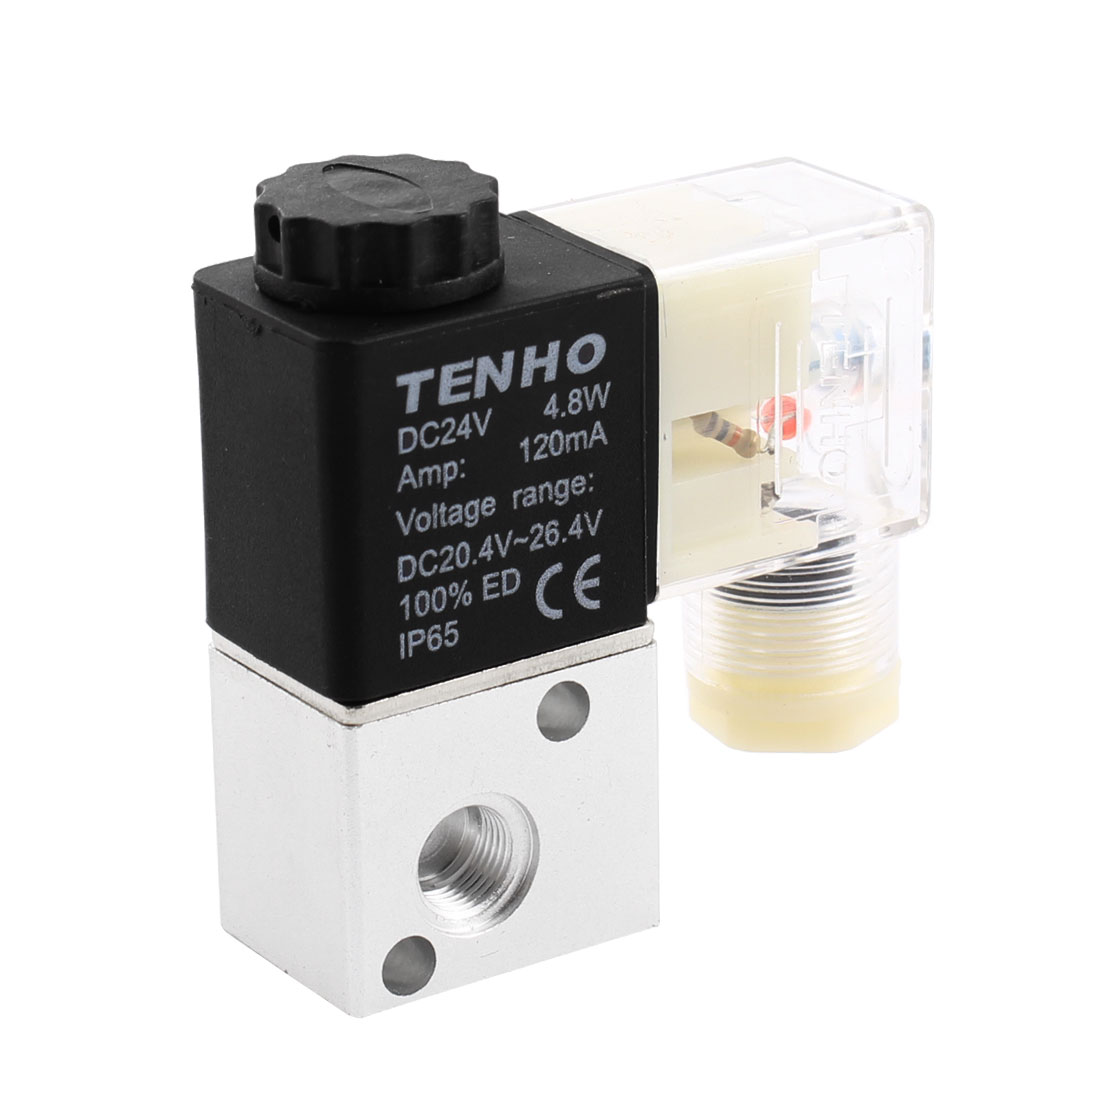 3V1-06 Direct Drive Type 9mm Thread 2 Way Waterproof Gas Air Pneumatic Control Solenoid Valve DC 24V 120mA